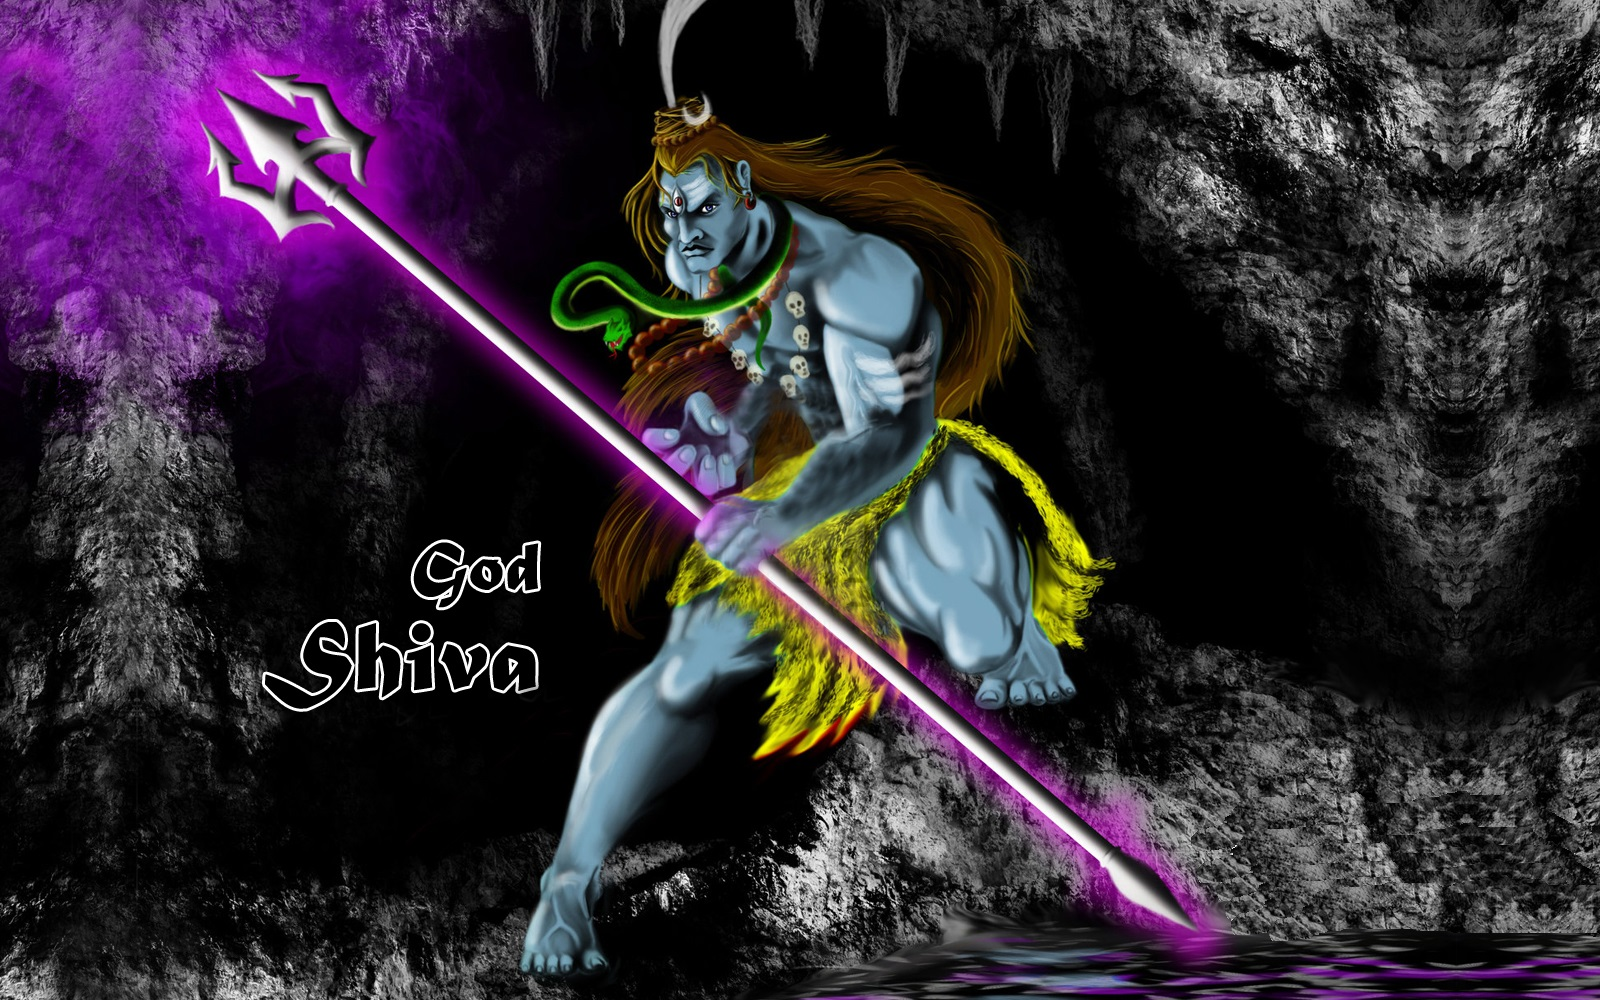 Shiva Chillum Hd Wallpaper Angry Lord Shiva Smoking Chilam Hd Wallpapers And Images